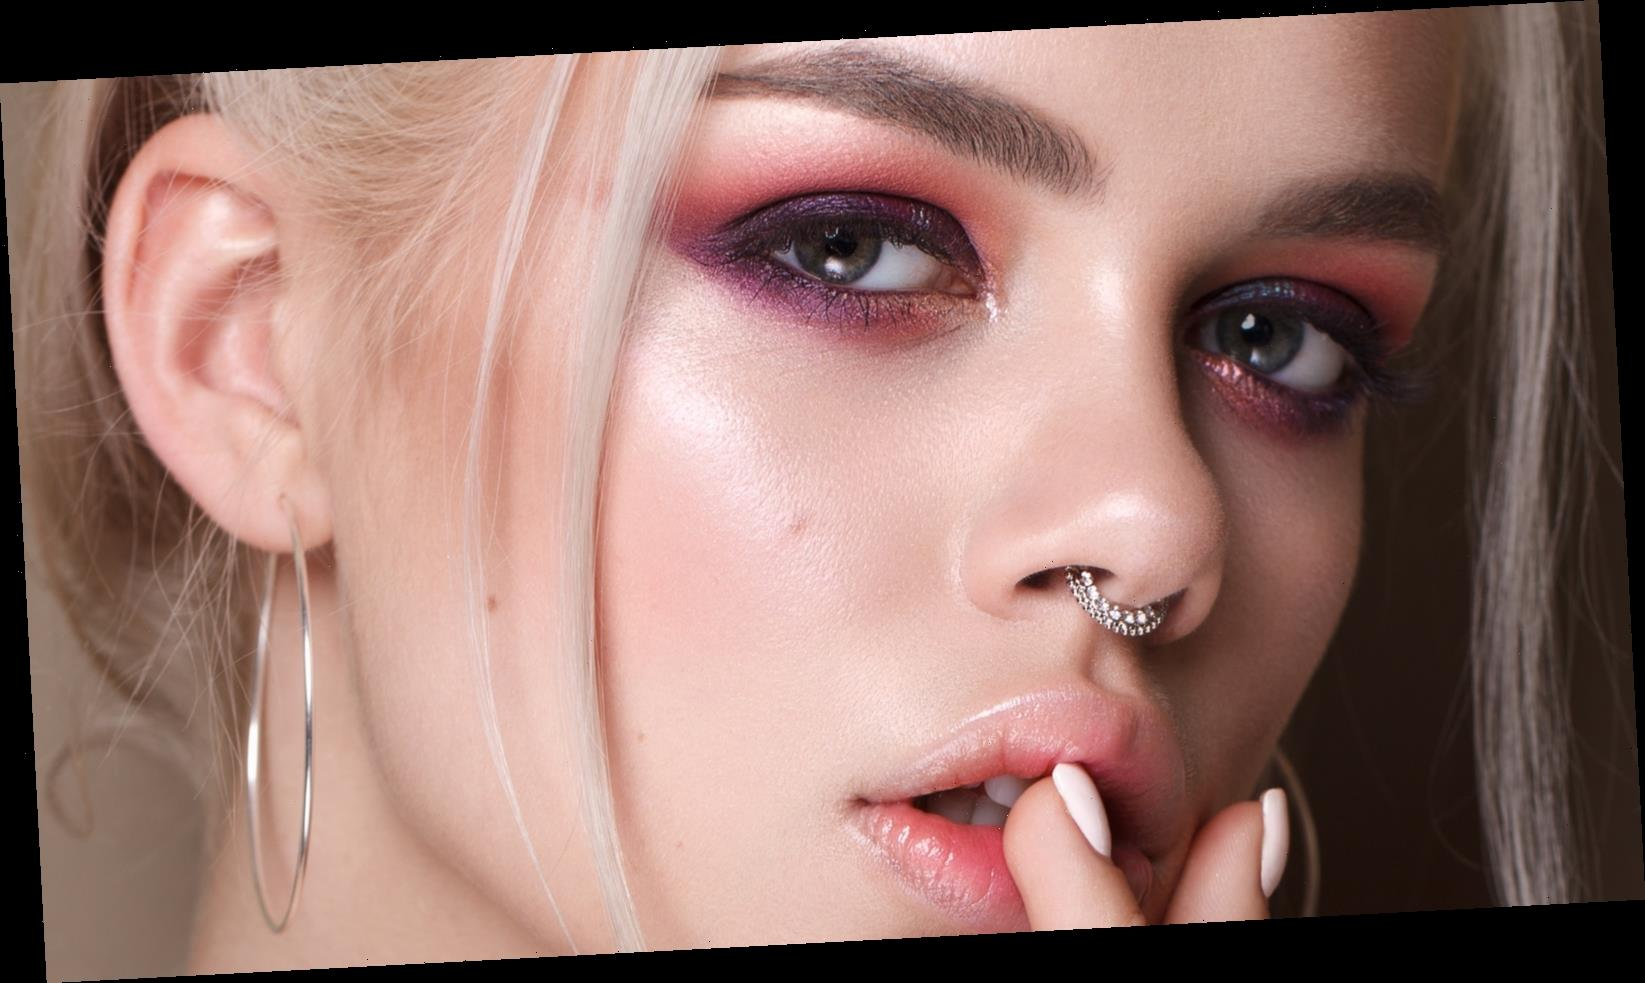 Piercing Trends You'll Be Asking For Throughout 2021